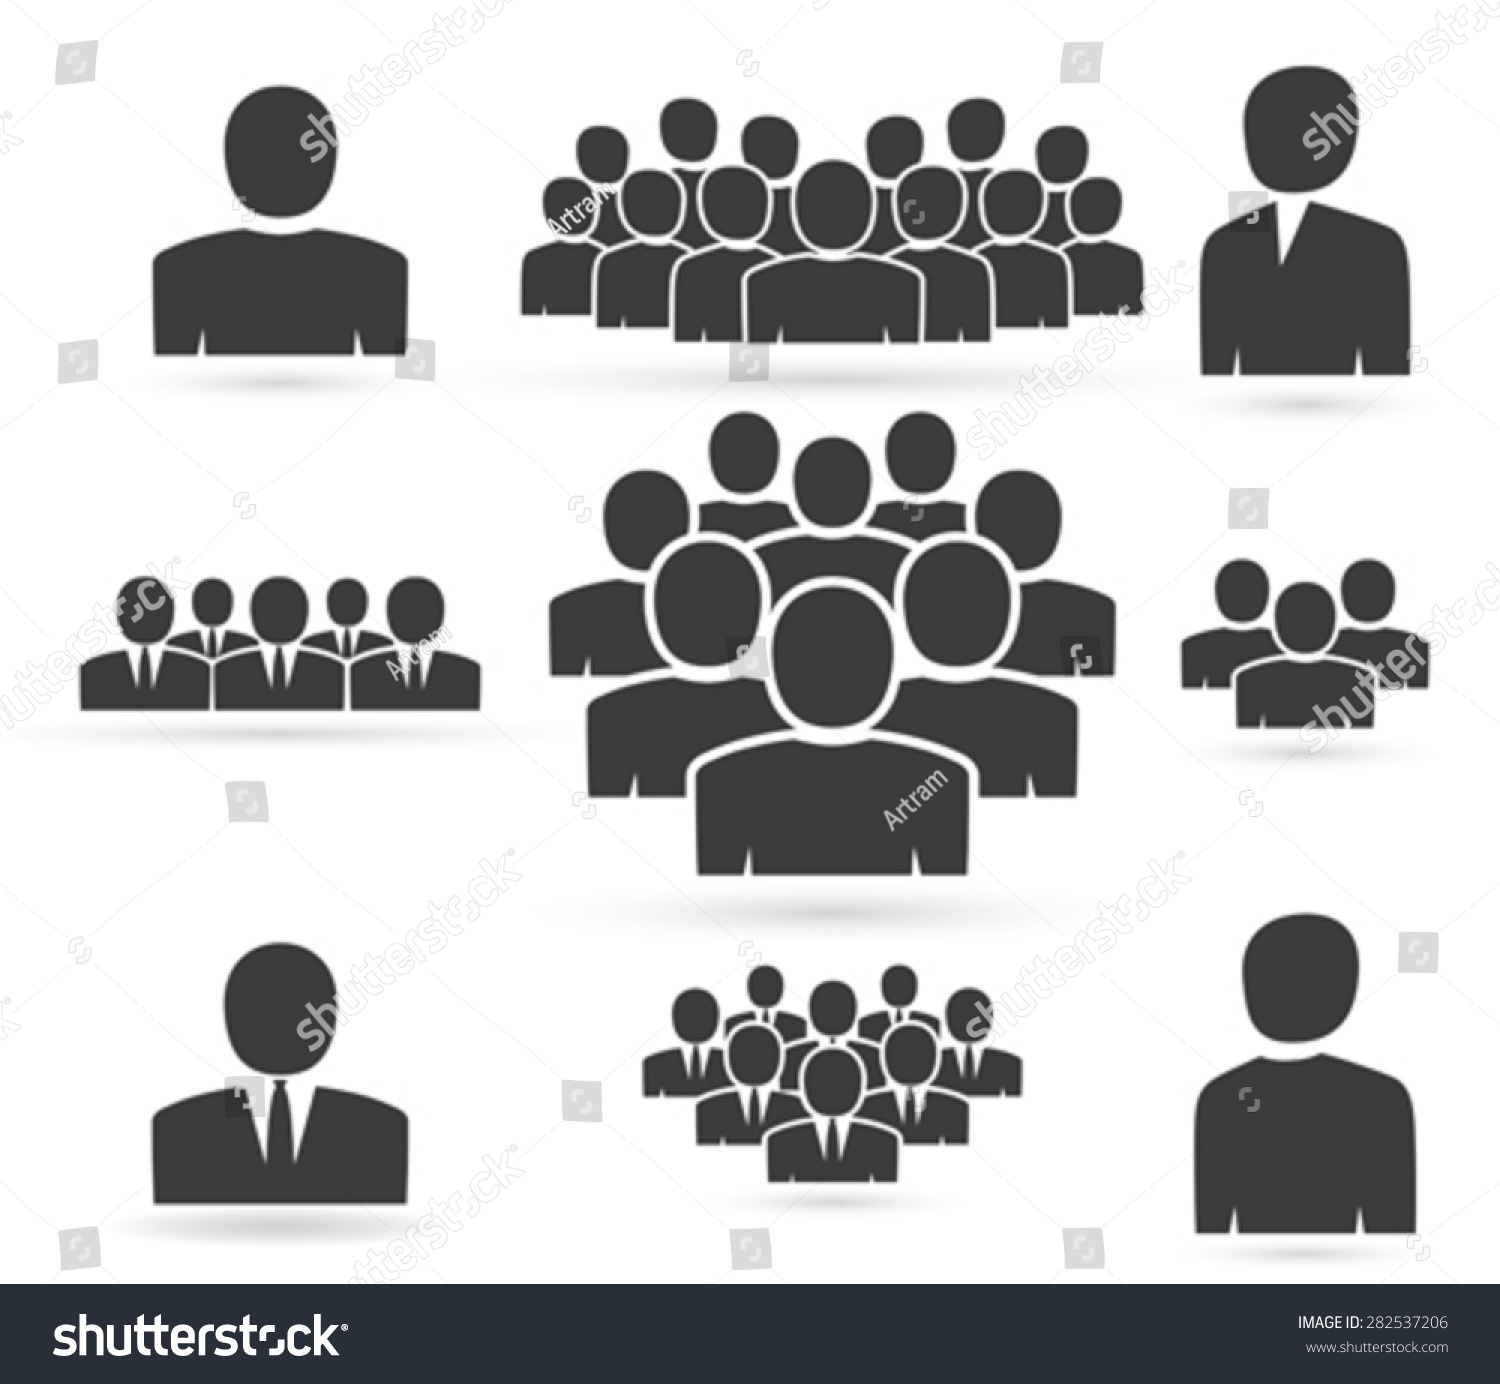 Crowd People Team Icon Silhouettes Stock Vector 282537206 ...